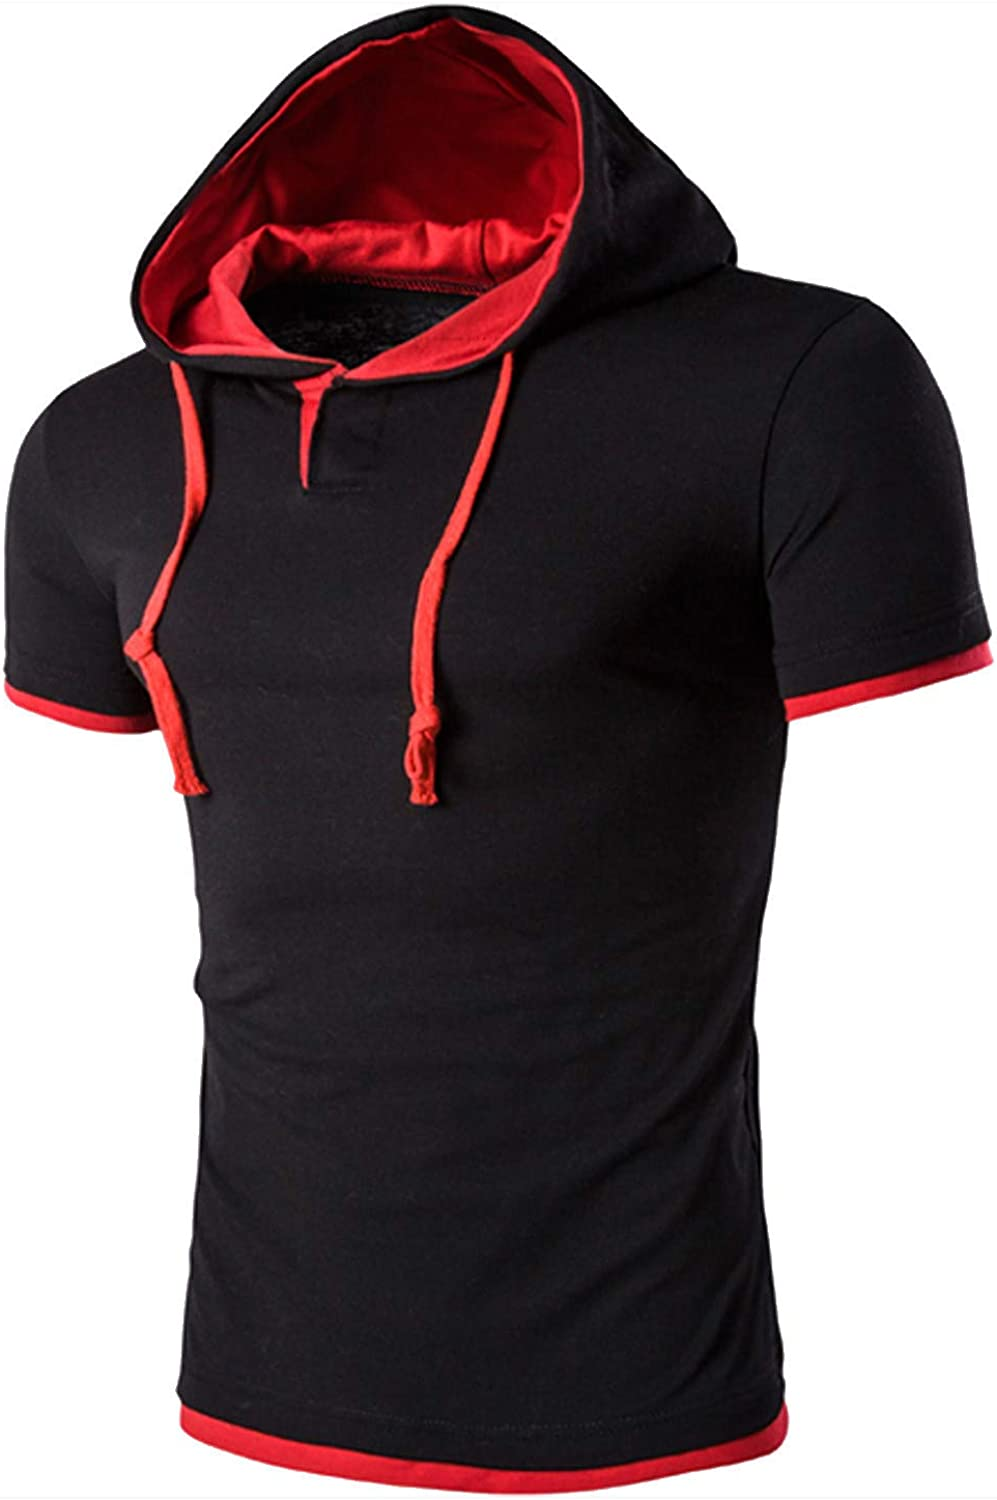 FUNEY Men's Hipster Hip Hop Short Sleeve Pullover Hoodies Shirts Fashion T-Shirt for Men Muscle Gym Fitness Workout Hoodies